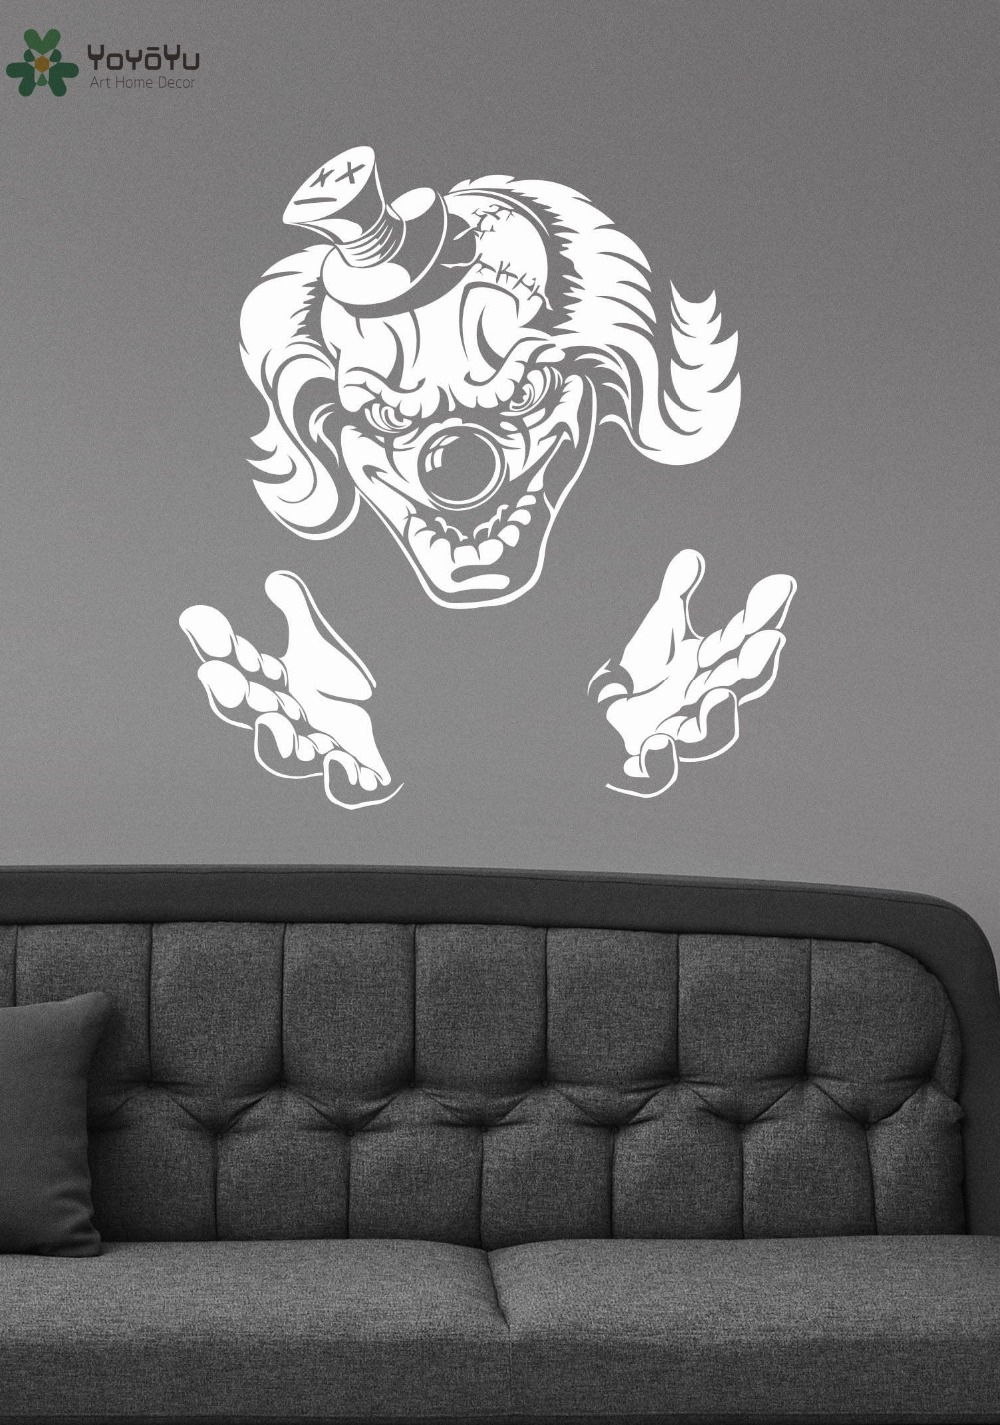 evil jester wall stickers vinyl halloween wall decal demonic scary art mural home decoration accessories removable - Halloween Wall Mural